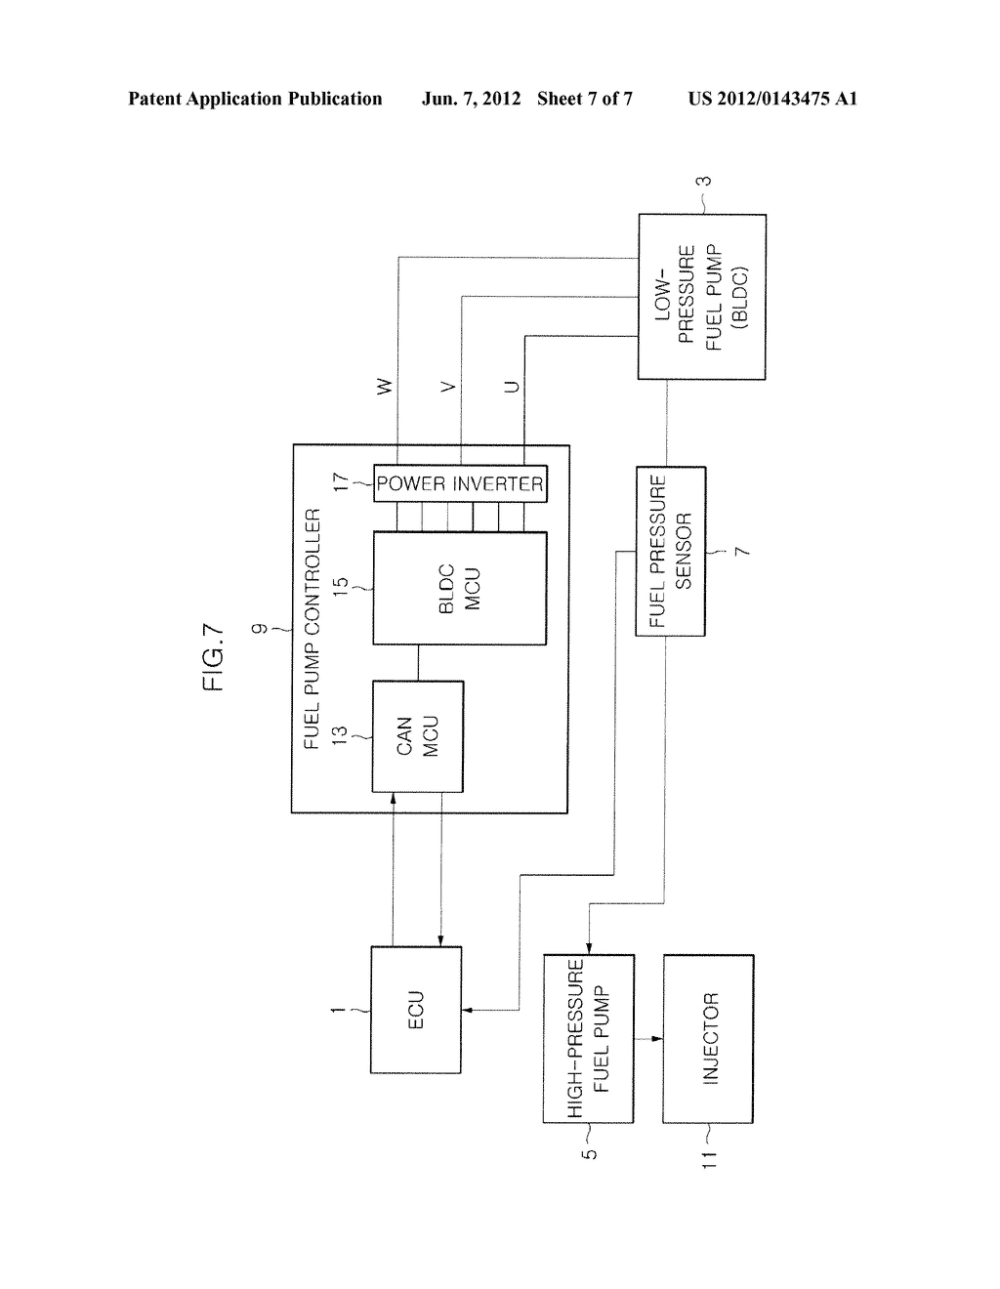 medium resolution of fuel supply system for gdi engine and control method thereof diagram schematic and image 08